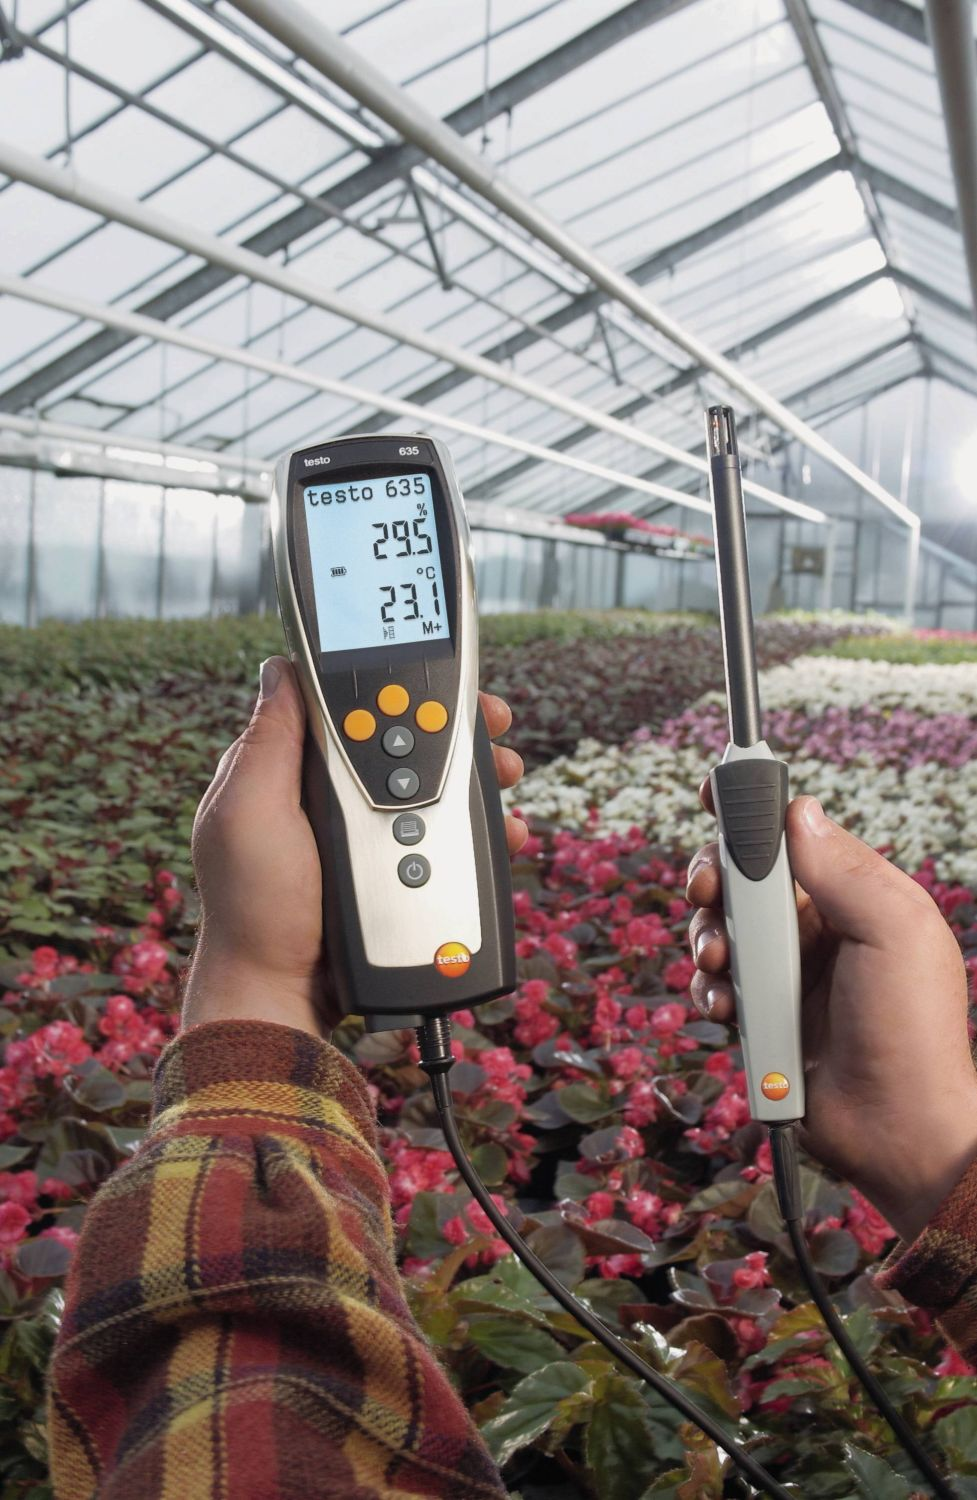 testo-635-thermohygrometer-greenhouse-flowers-8.jpg